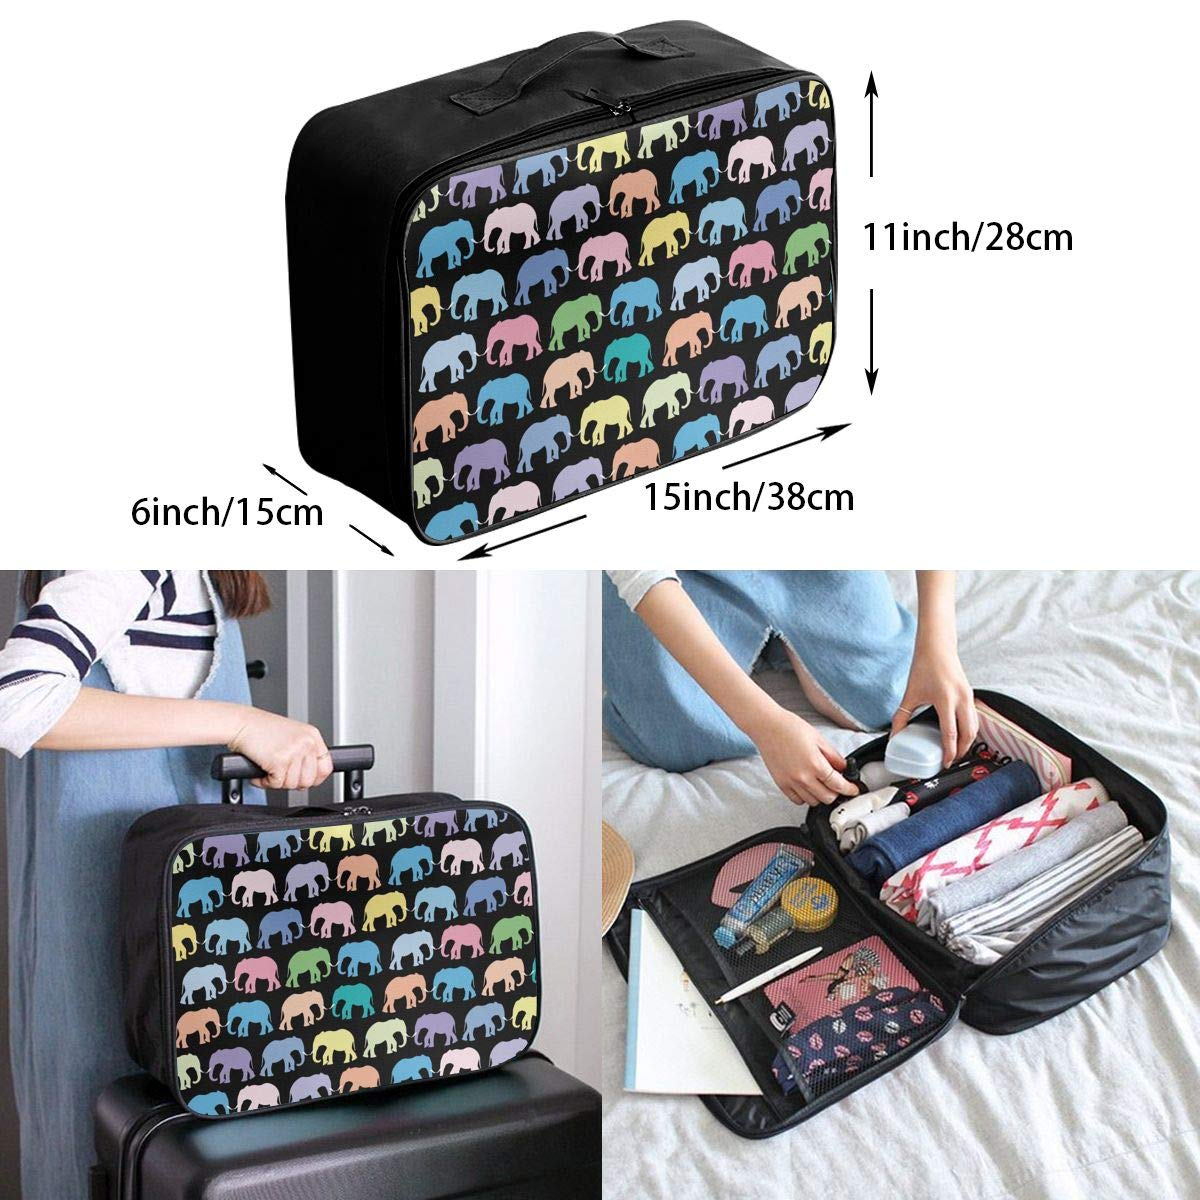 YueLJB Colorful Elephant Lightweight Large Capacity Portable Luggage Bag Travel Duffel Bag Storage Carry Luggage Duffle Tote Bag